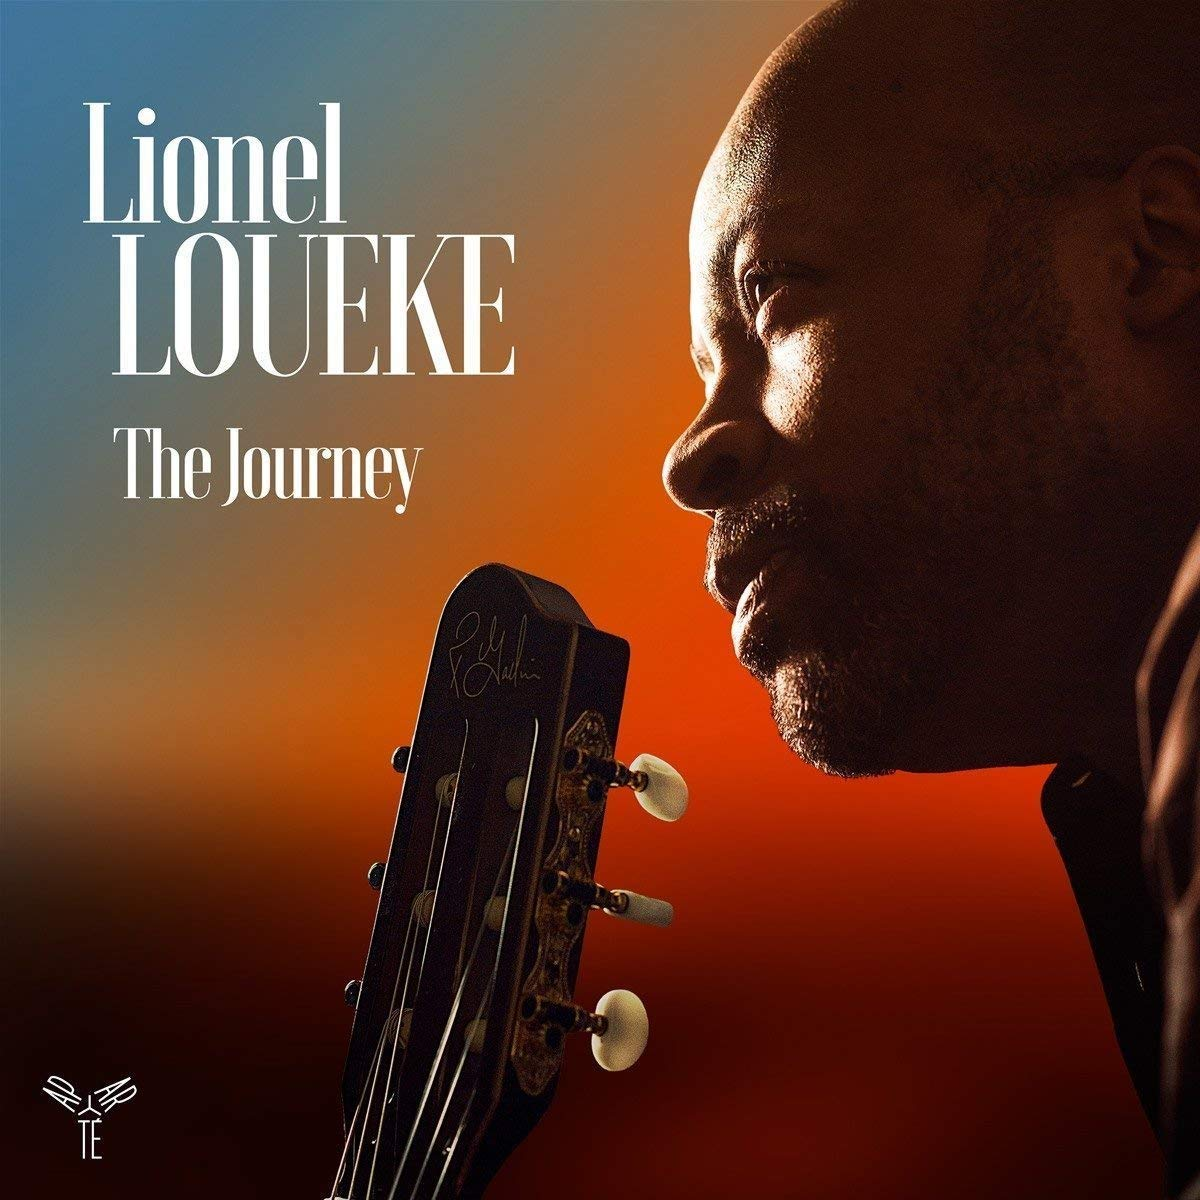 Qwest-TV-Lionel-Loueke-The-Journey